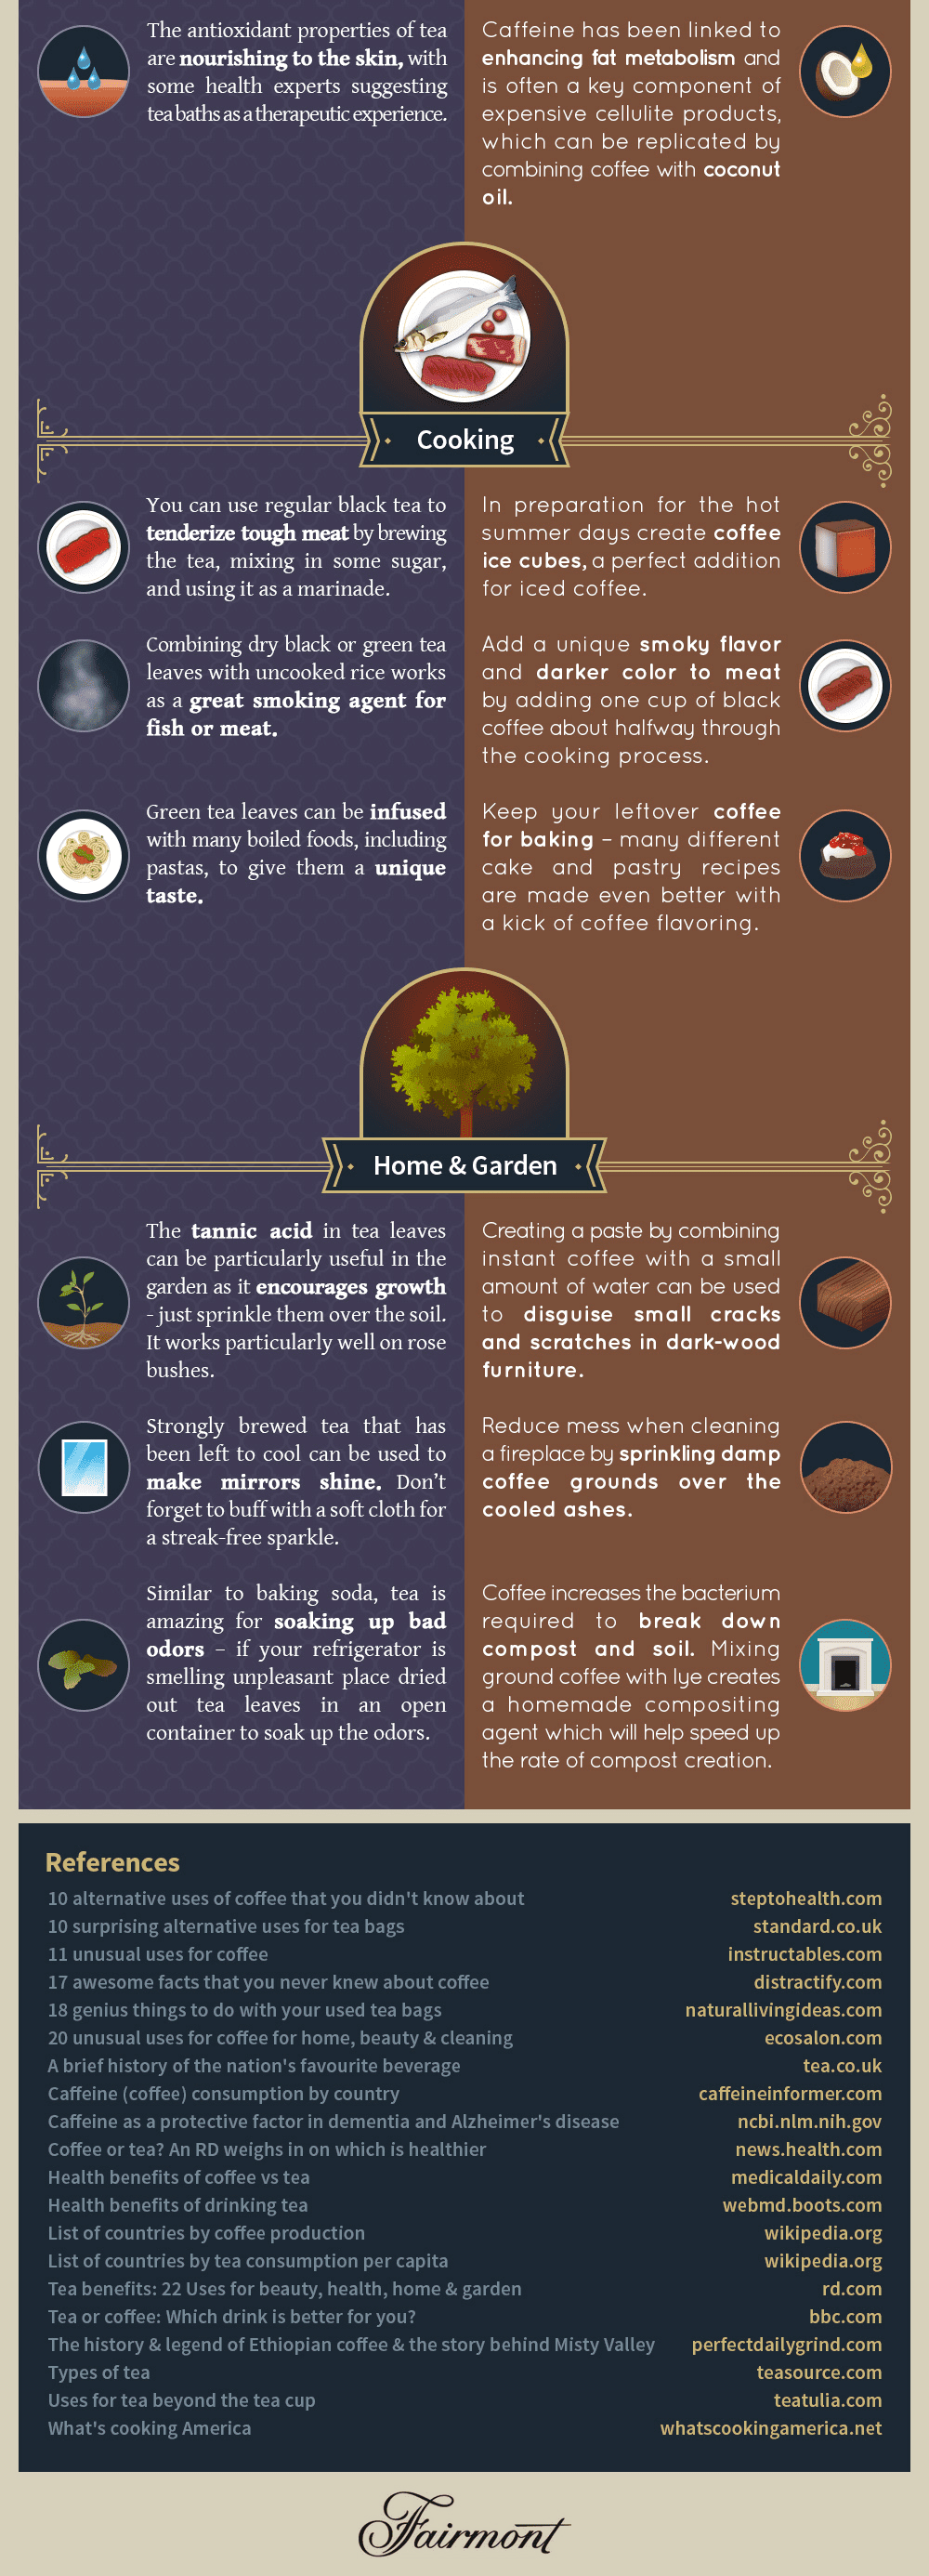 http://www.fairmont.com/infographics/tea-coffee-health-benefits/img/tea_and_coffee_p3.png